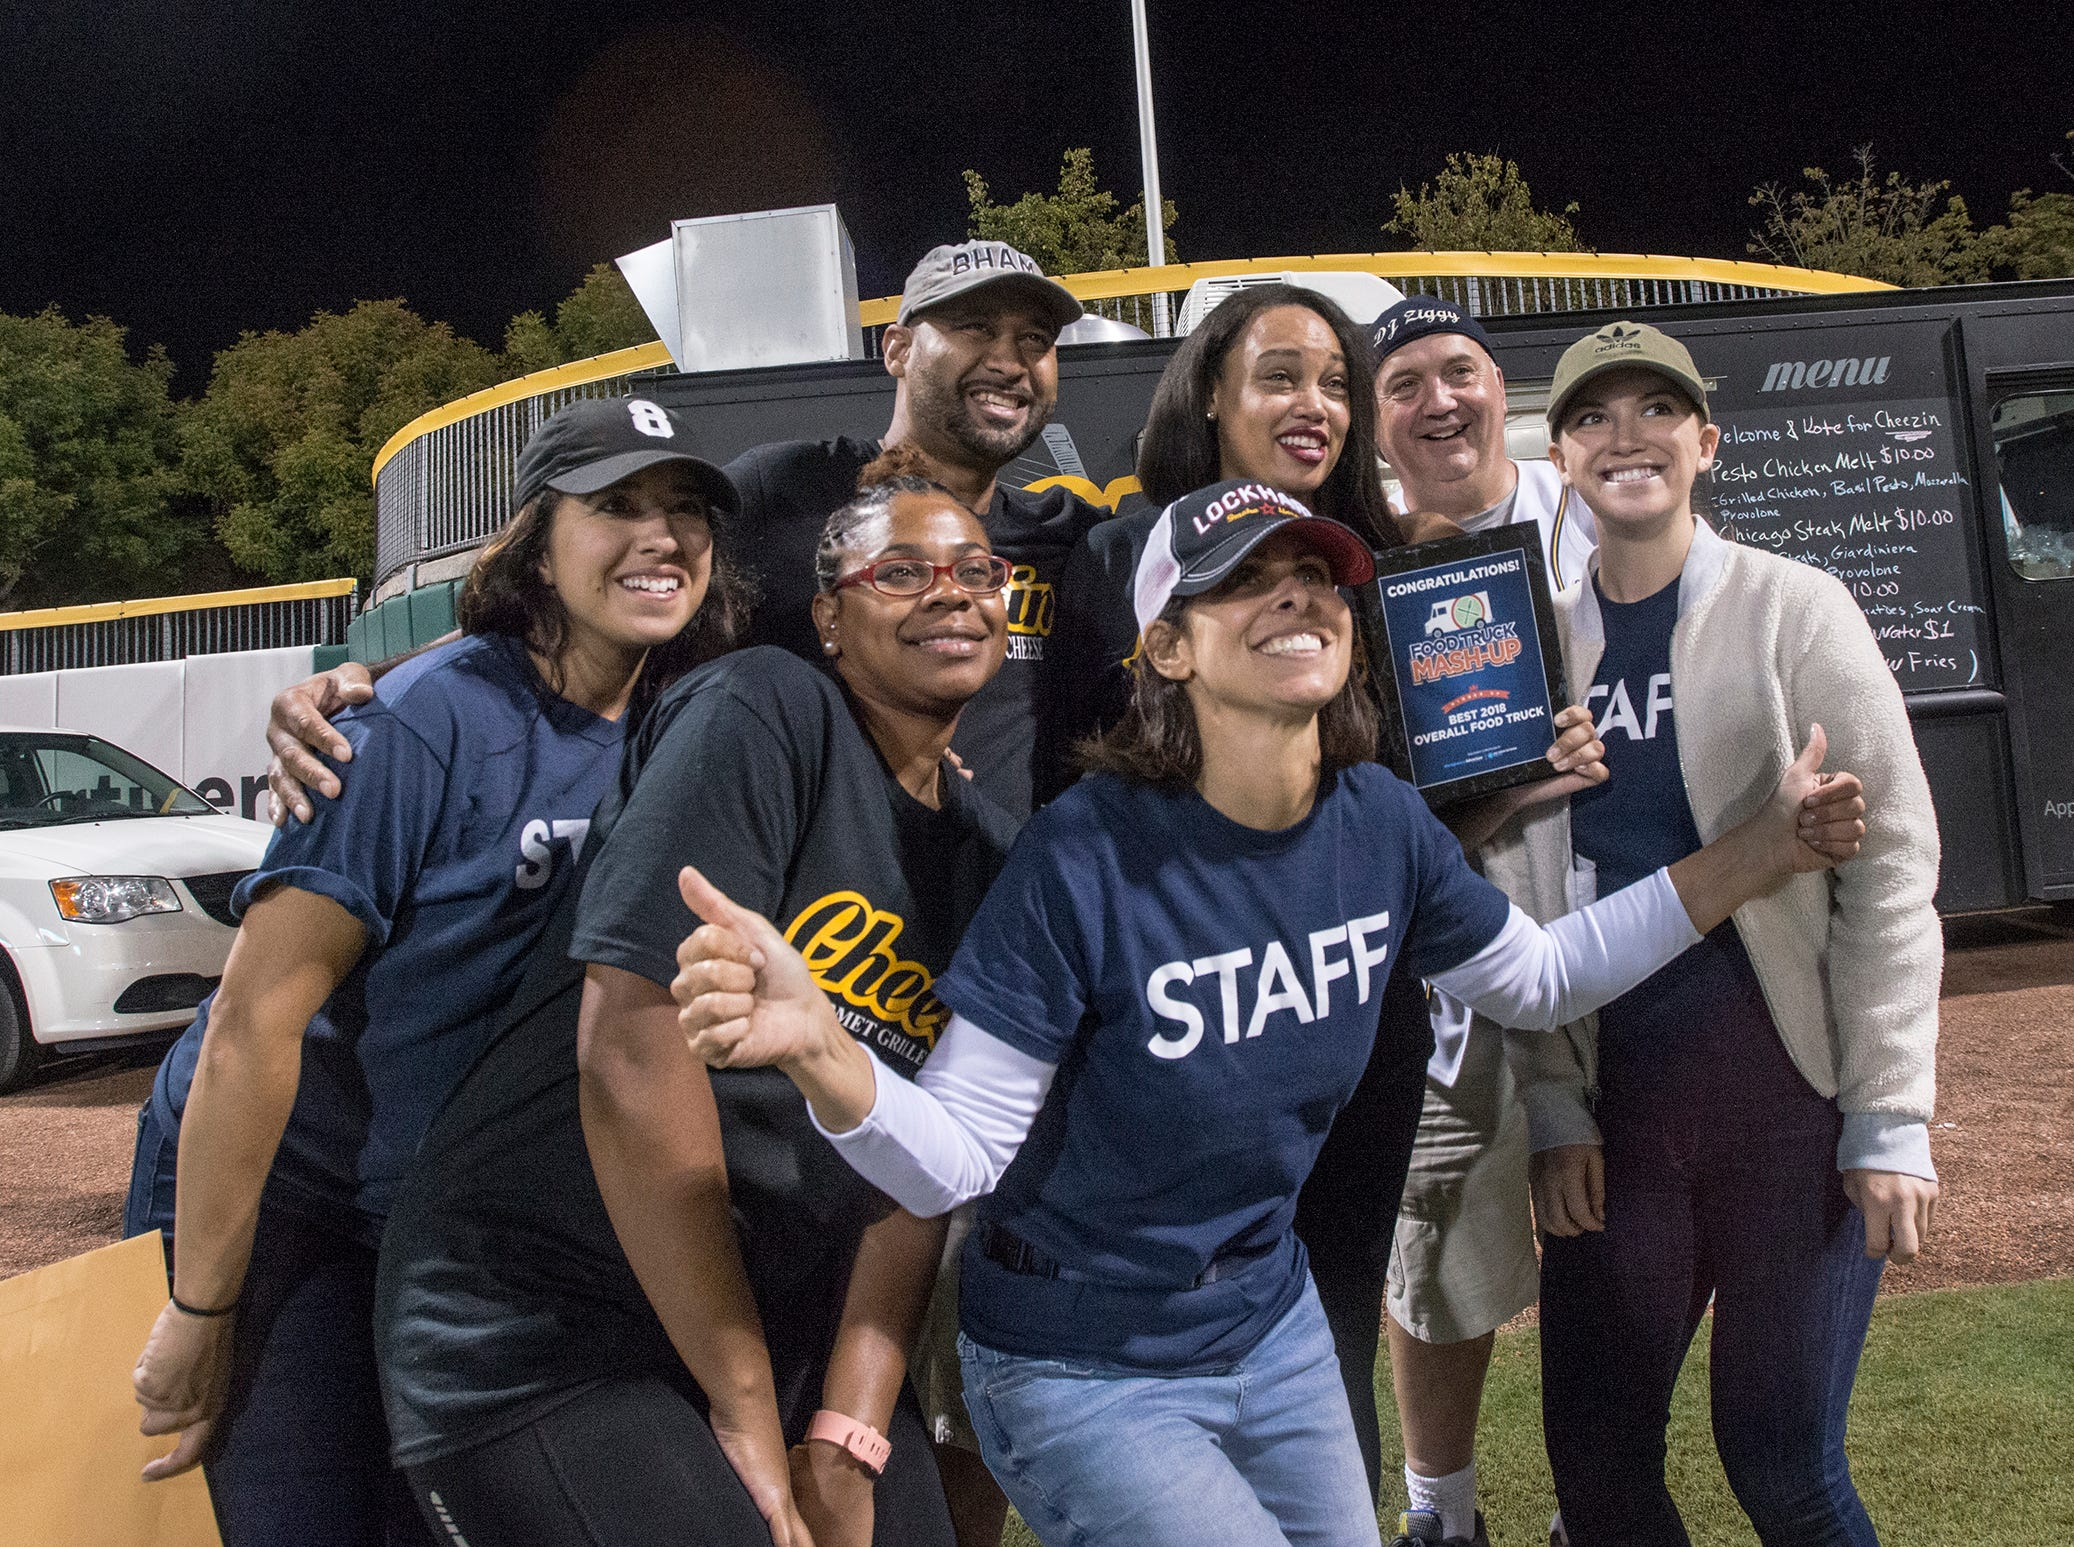 For the third time in a row, Cheezin won the best food truck competition. Food Truck Mash-Up returned to Riverwalk Stadium on Saturday, Oct. 20, 2018, bringing a variety of food trucks, music and games for guests to enjoy.